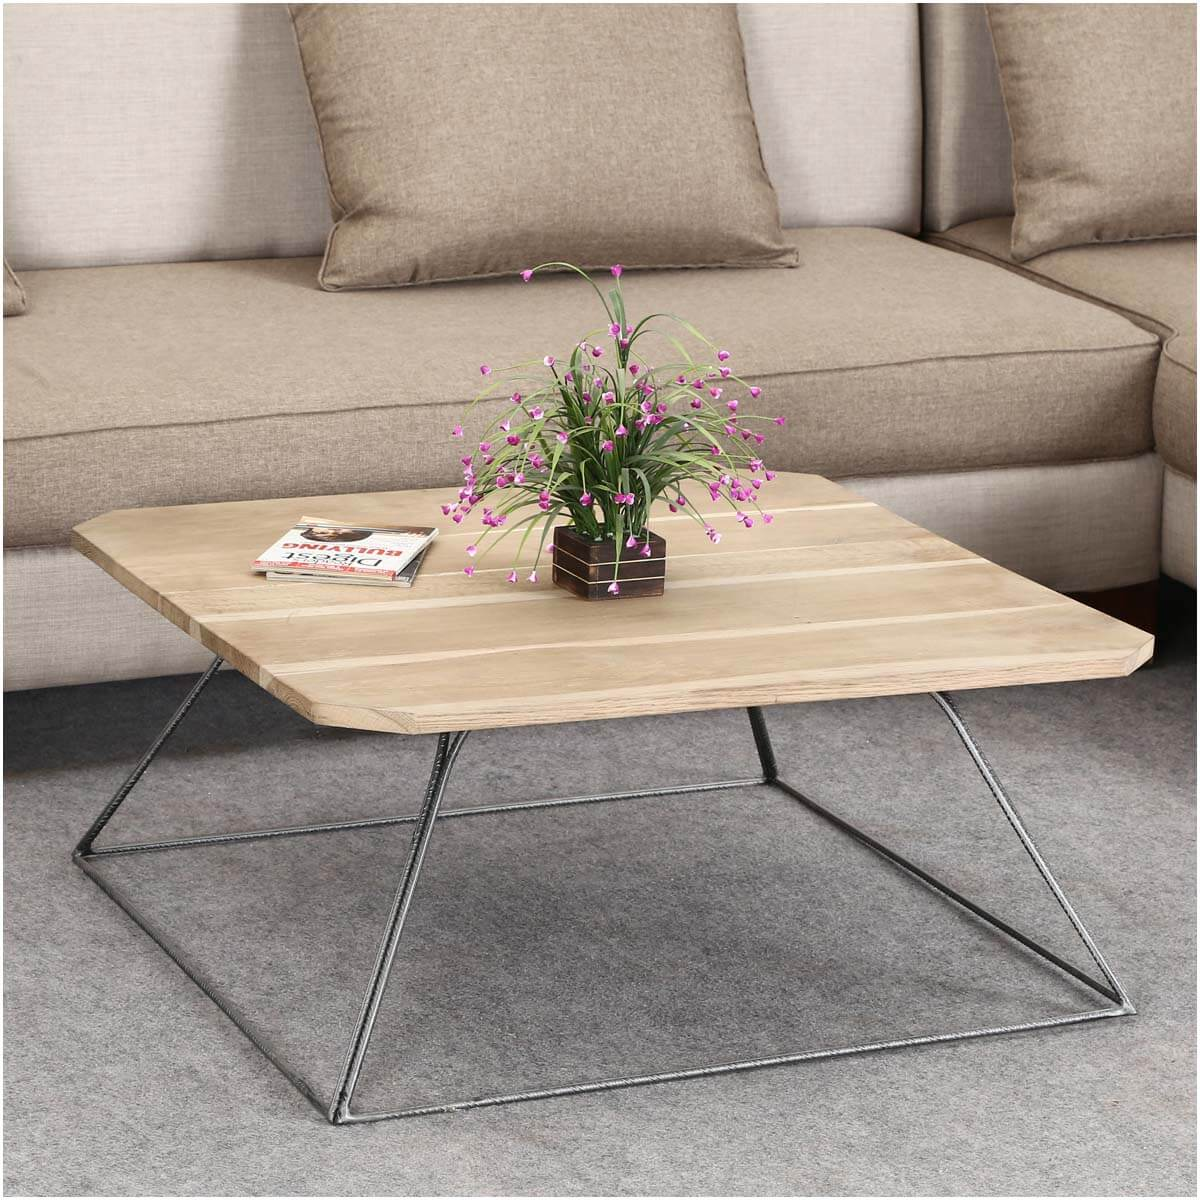 Solid Wood And Metal Coffee Table: Trapezoidal Prism Base Solid Wood & Iron Coffee Table